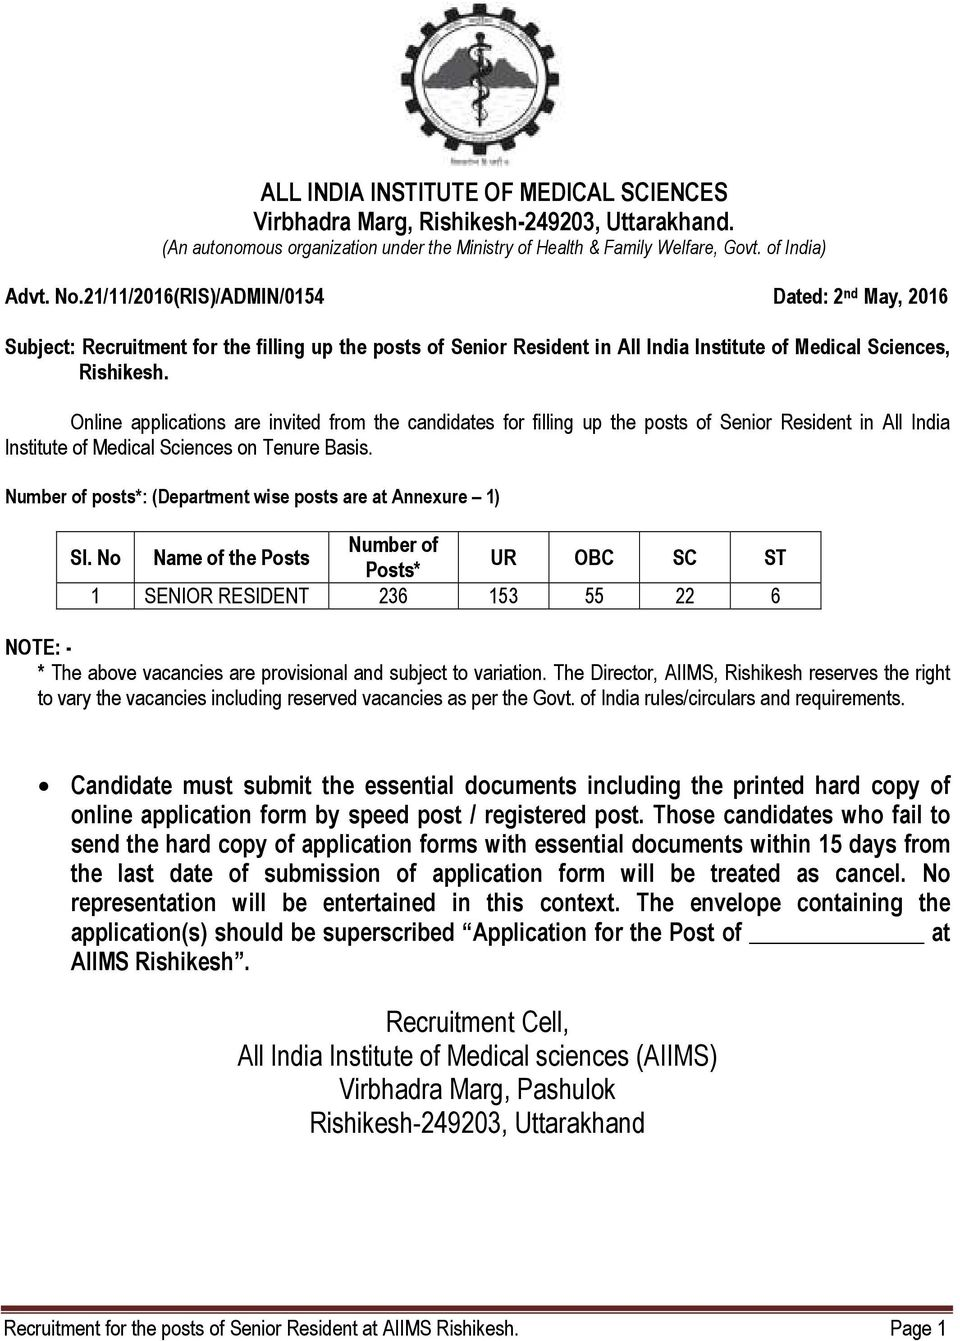 Online applications are invited from the candidates for filling up the posts of Senior Resident in All India Institute of Medical Sciences on Tenure Basis.